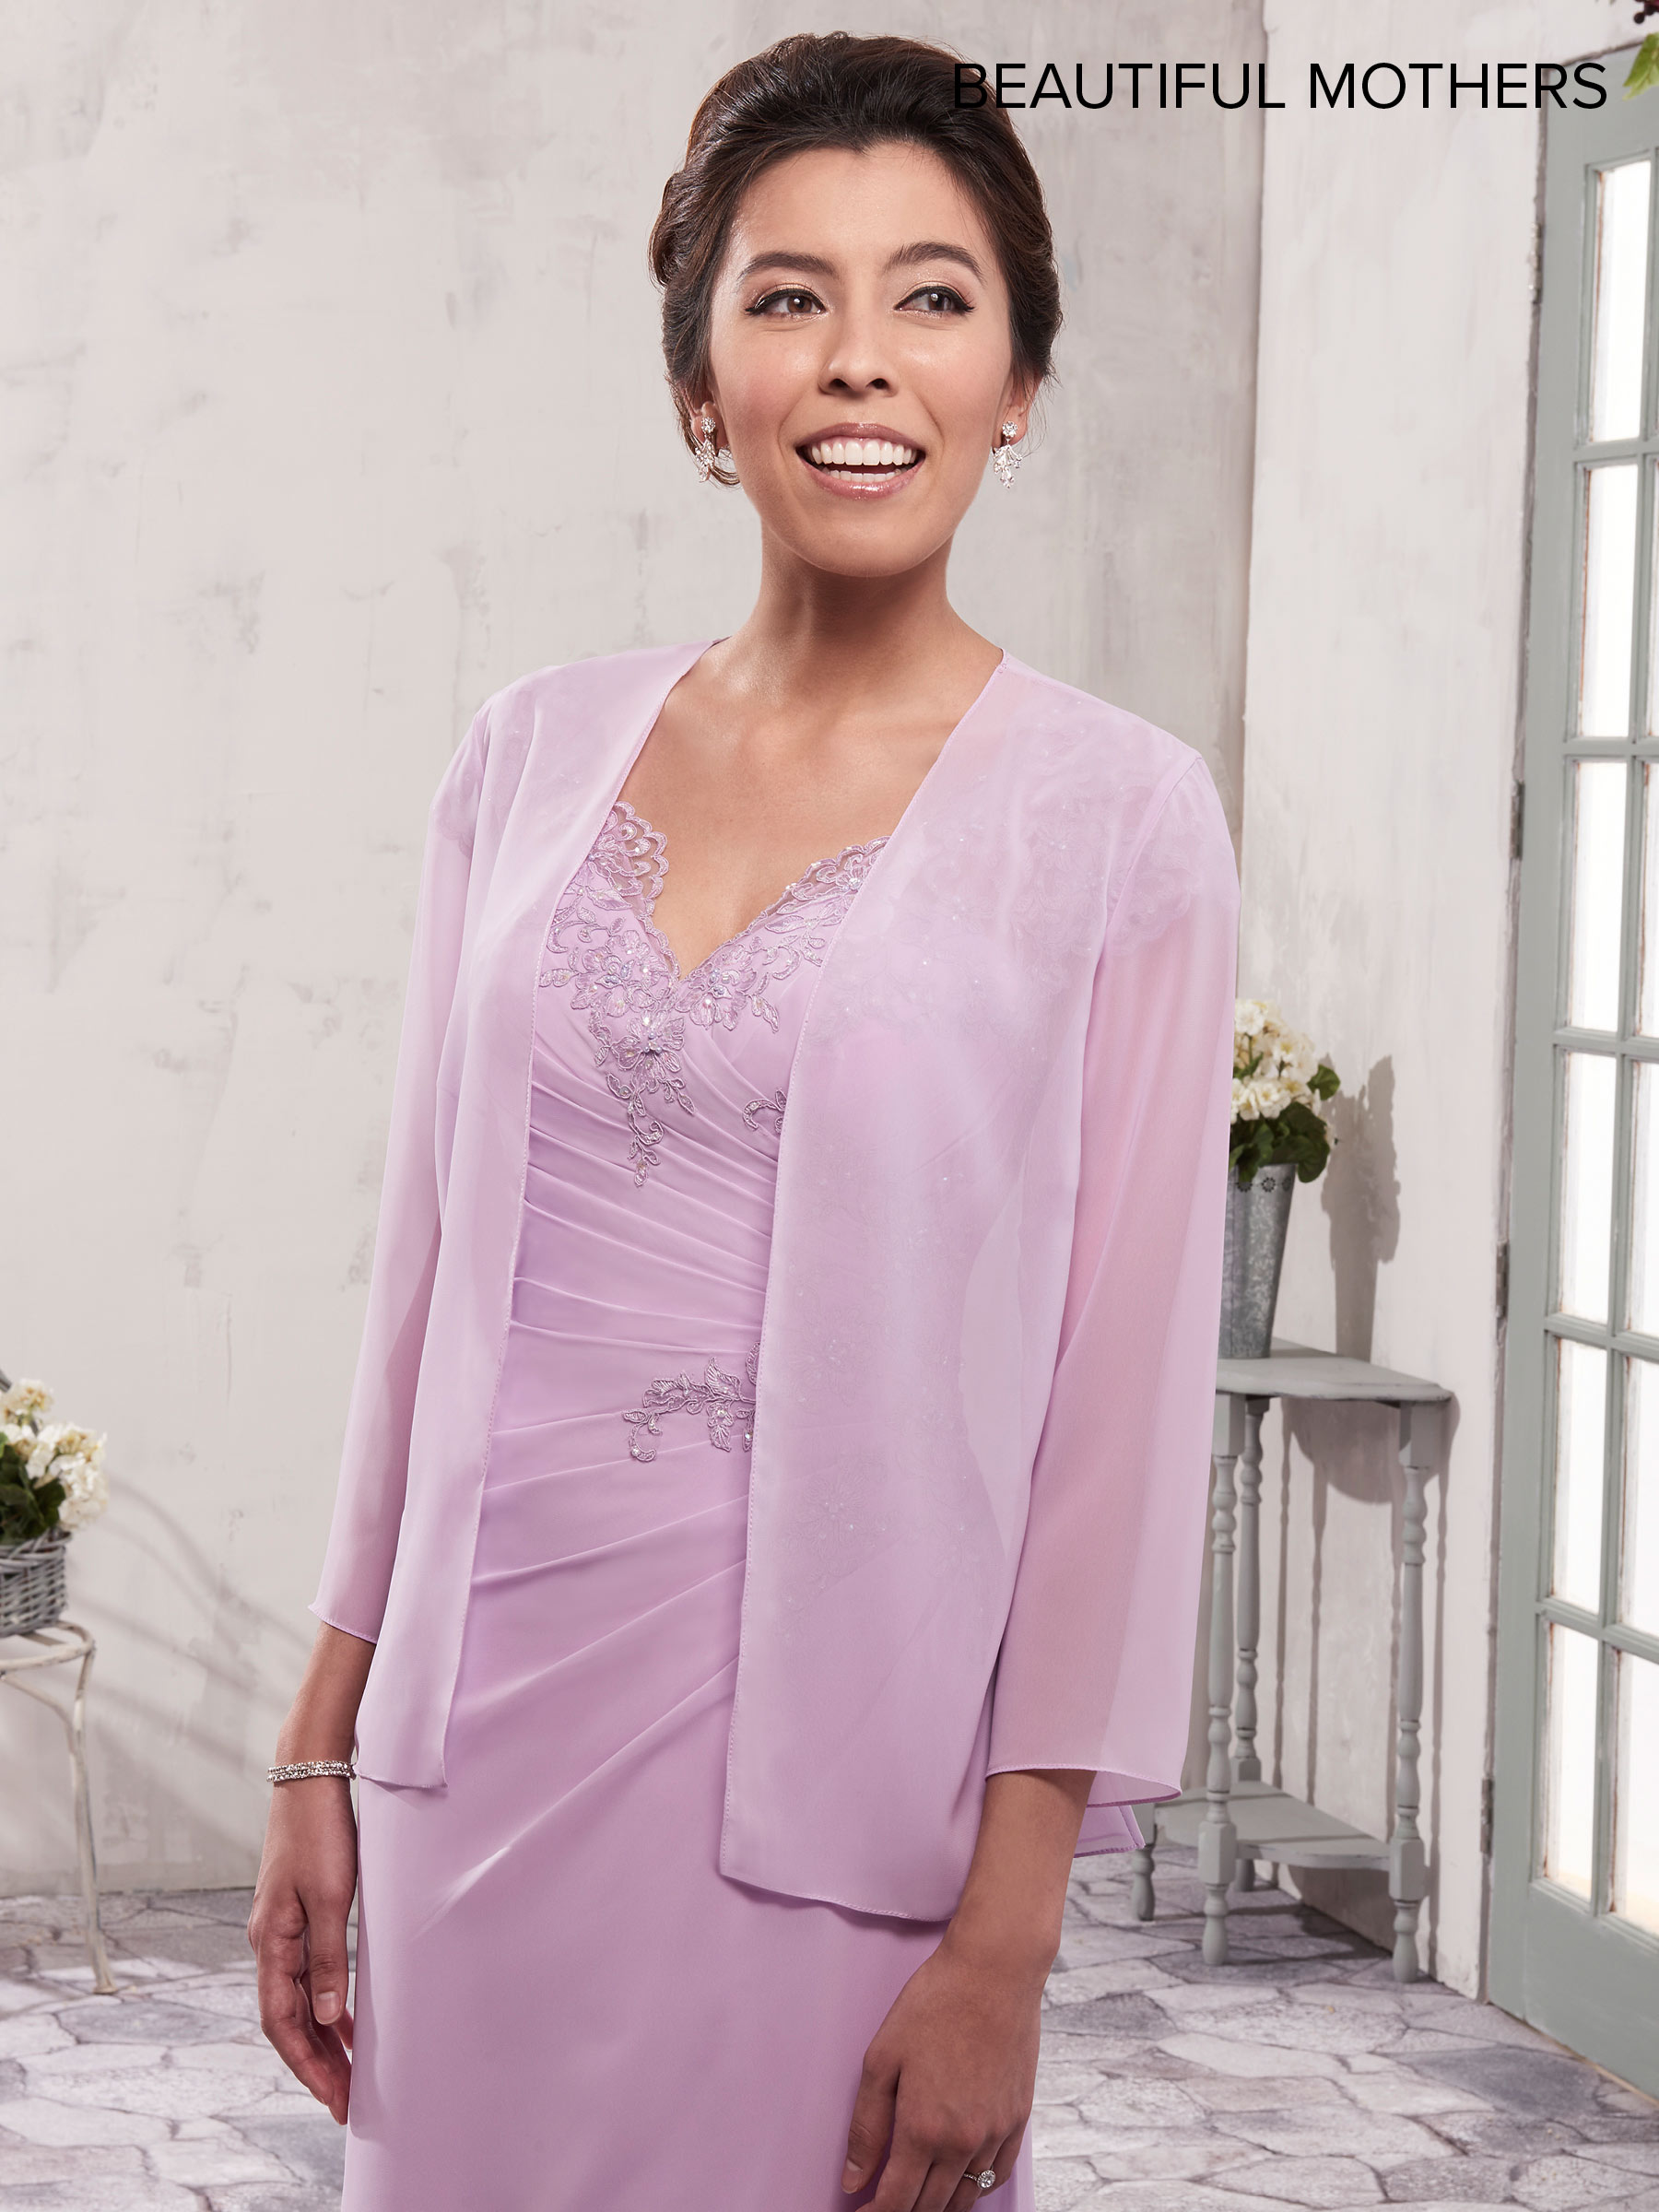 Mother Of The Bride Dresses | Beautiful Mothers | Style - MB8002